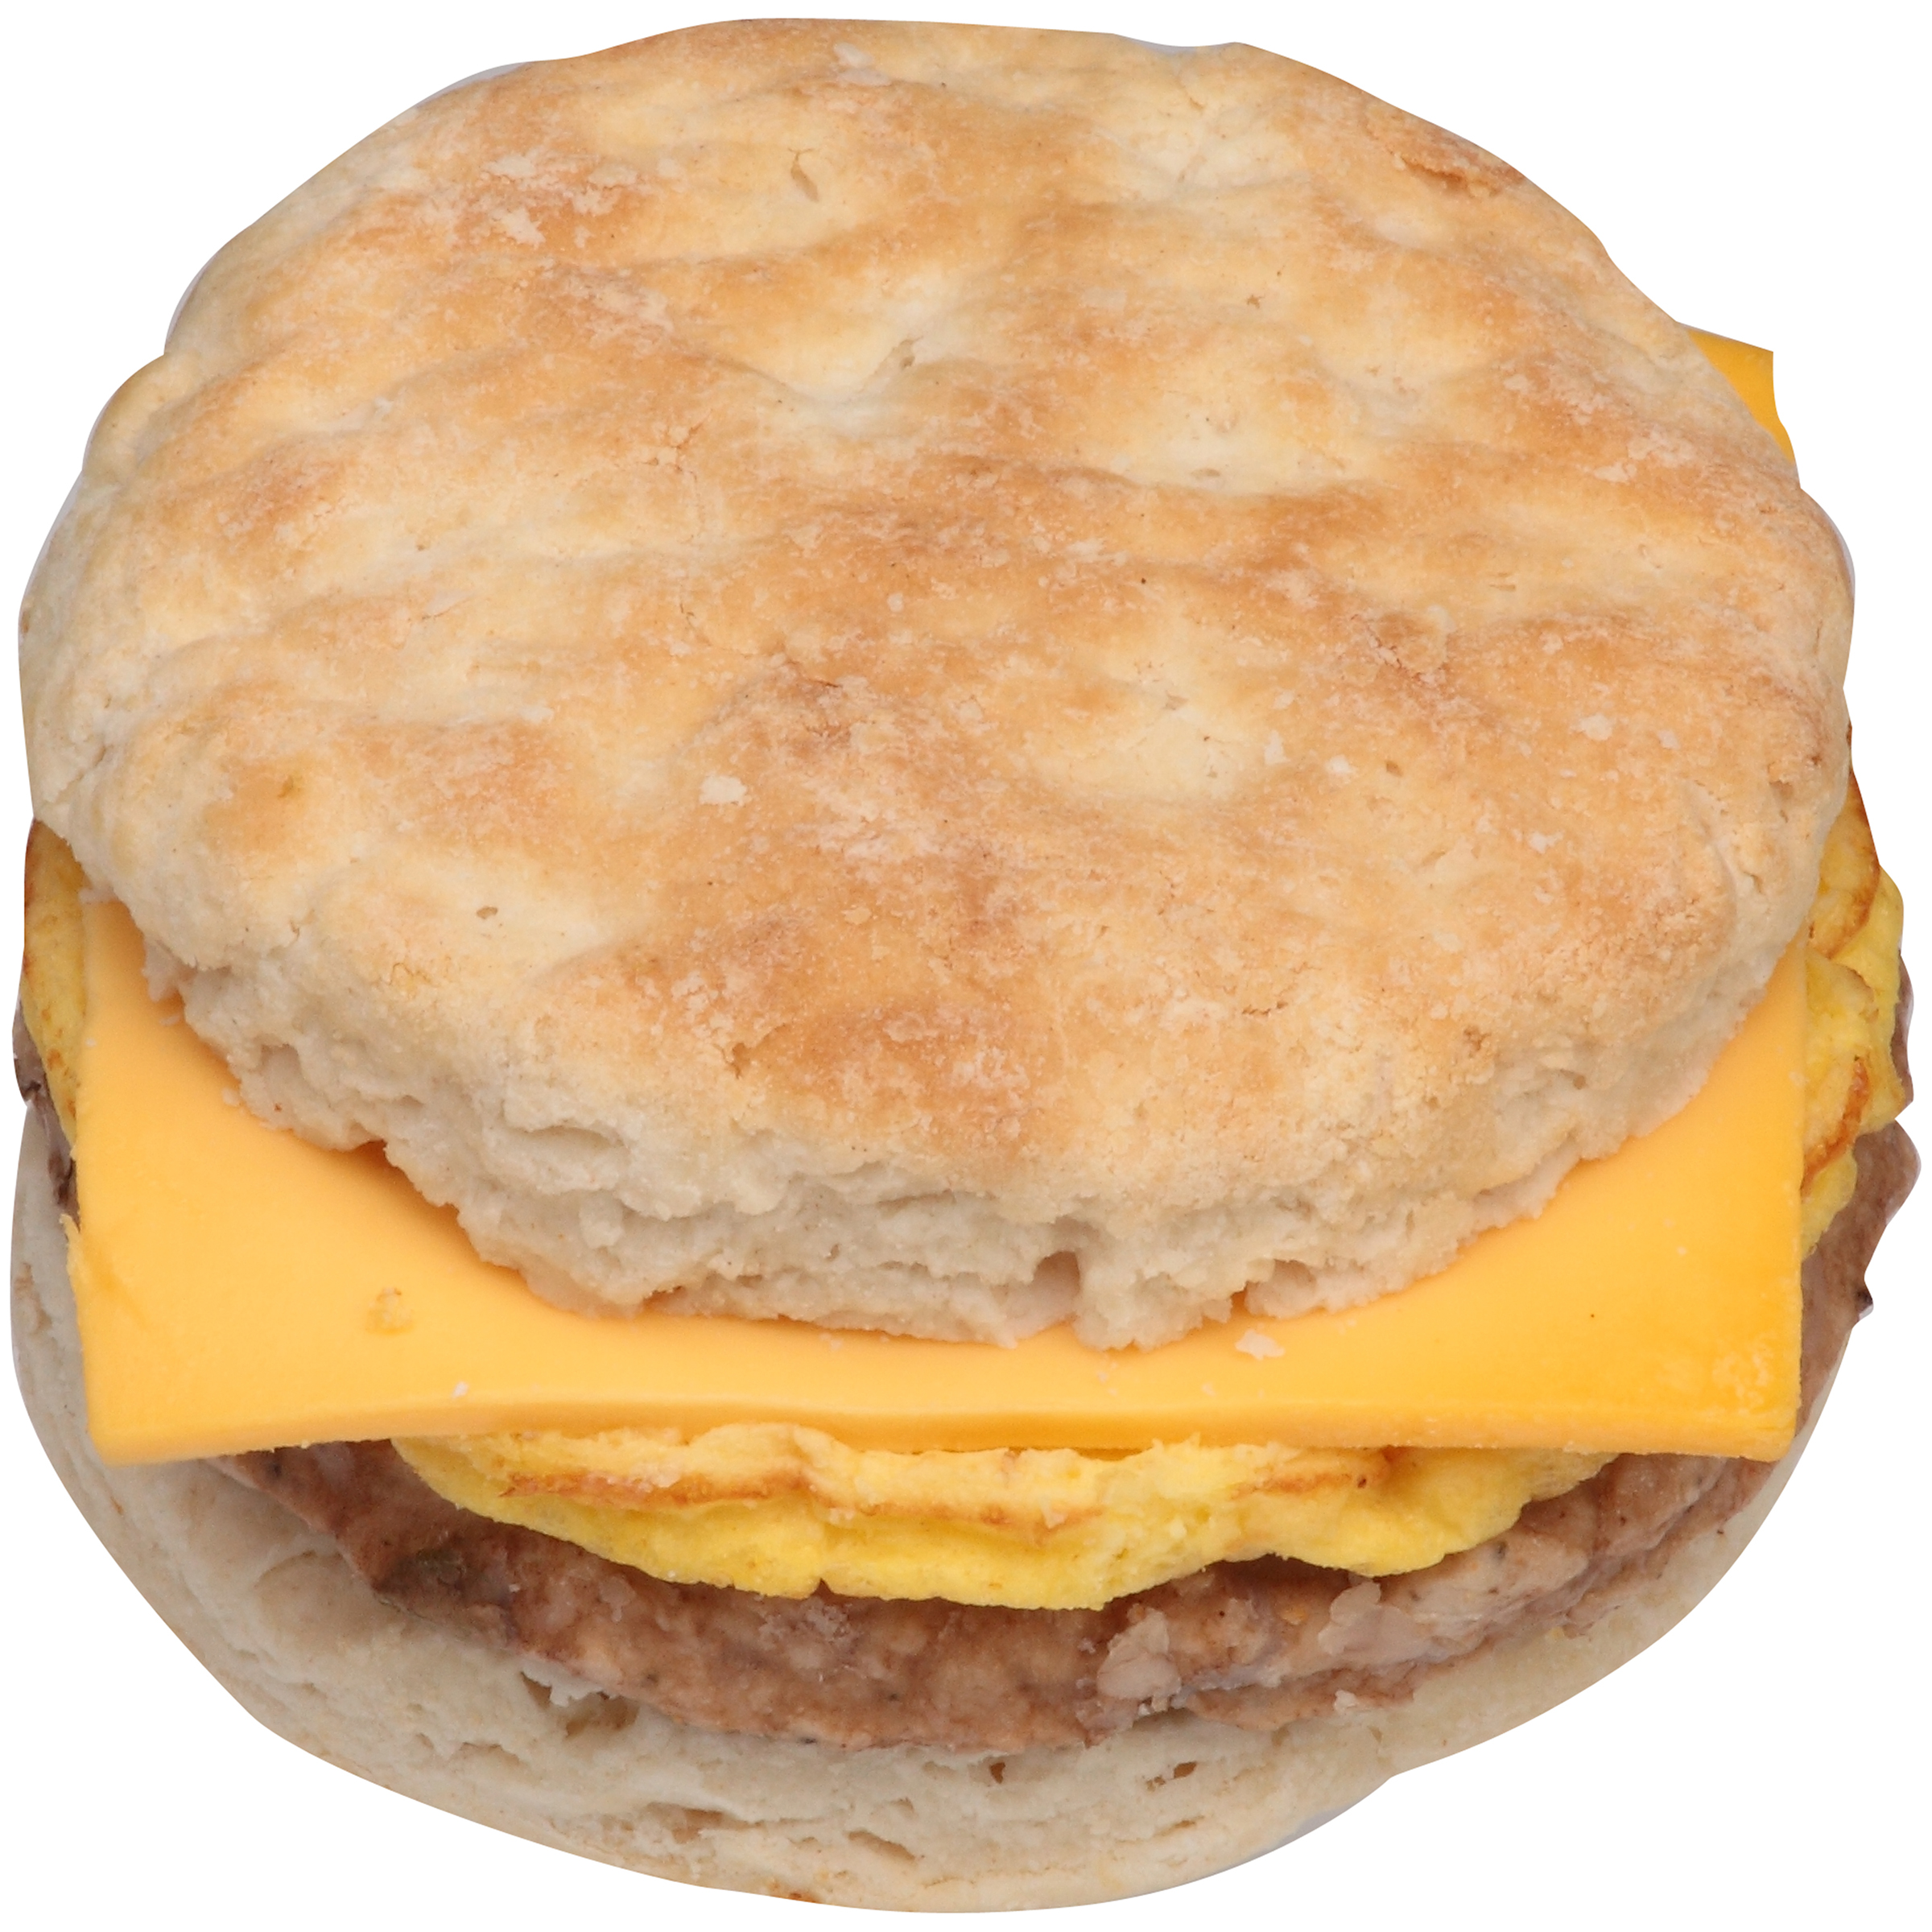 Jimmy Dean Jumbo Sausage/Egg/Cheese Biscuit Sandwich, 4.9 oz., 12 per case